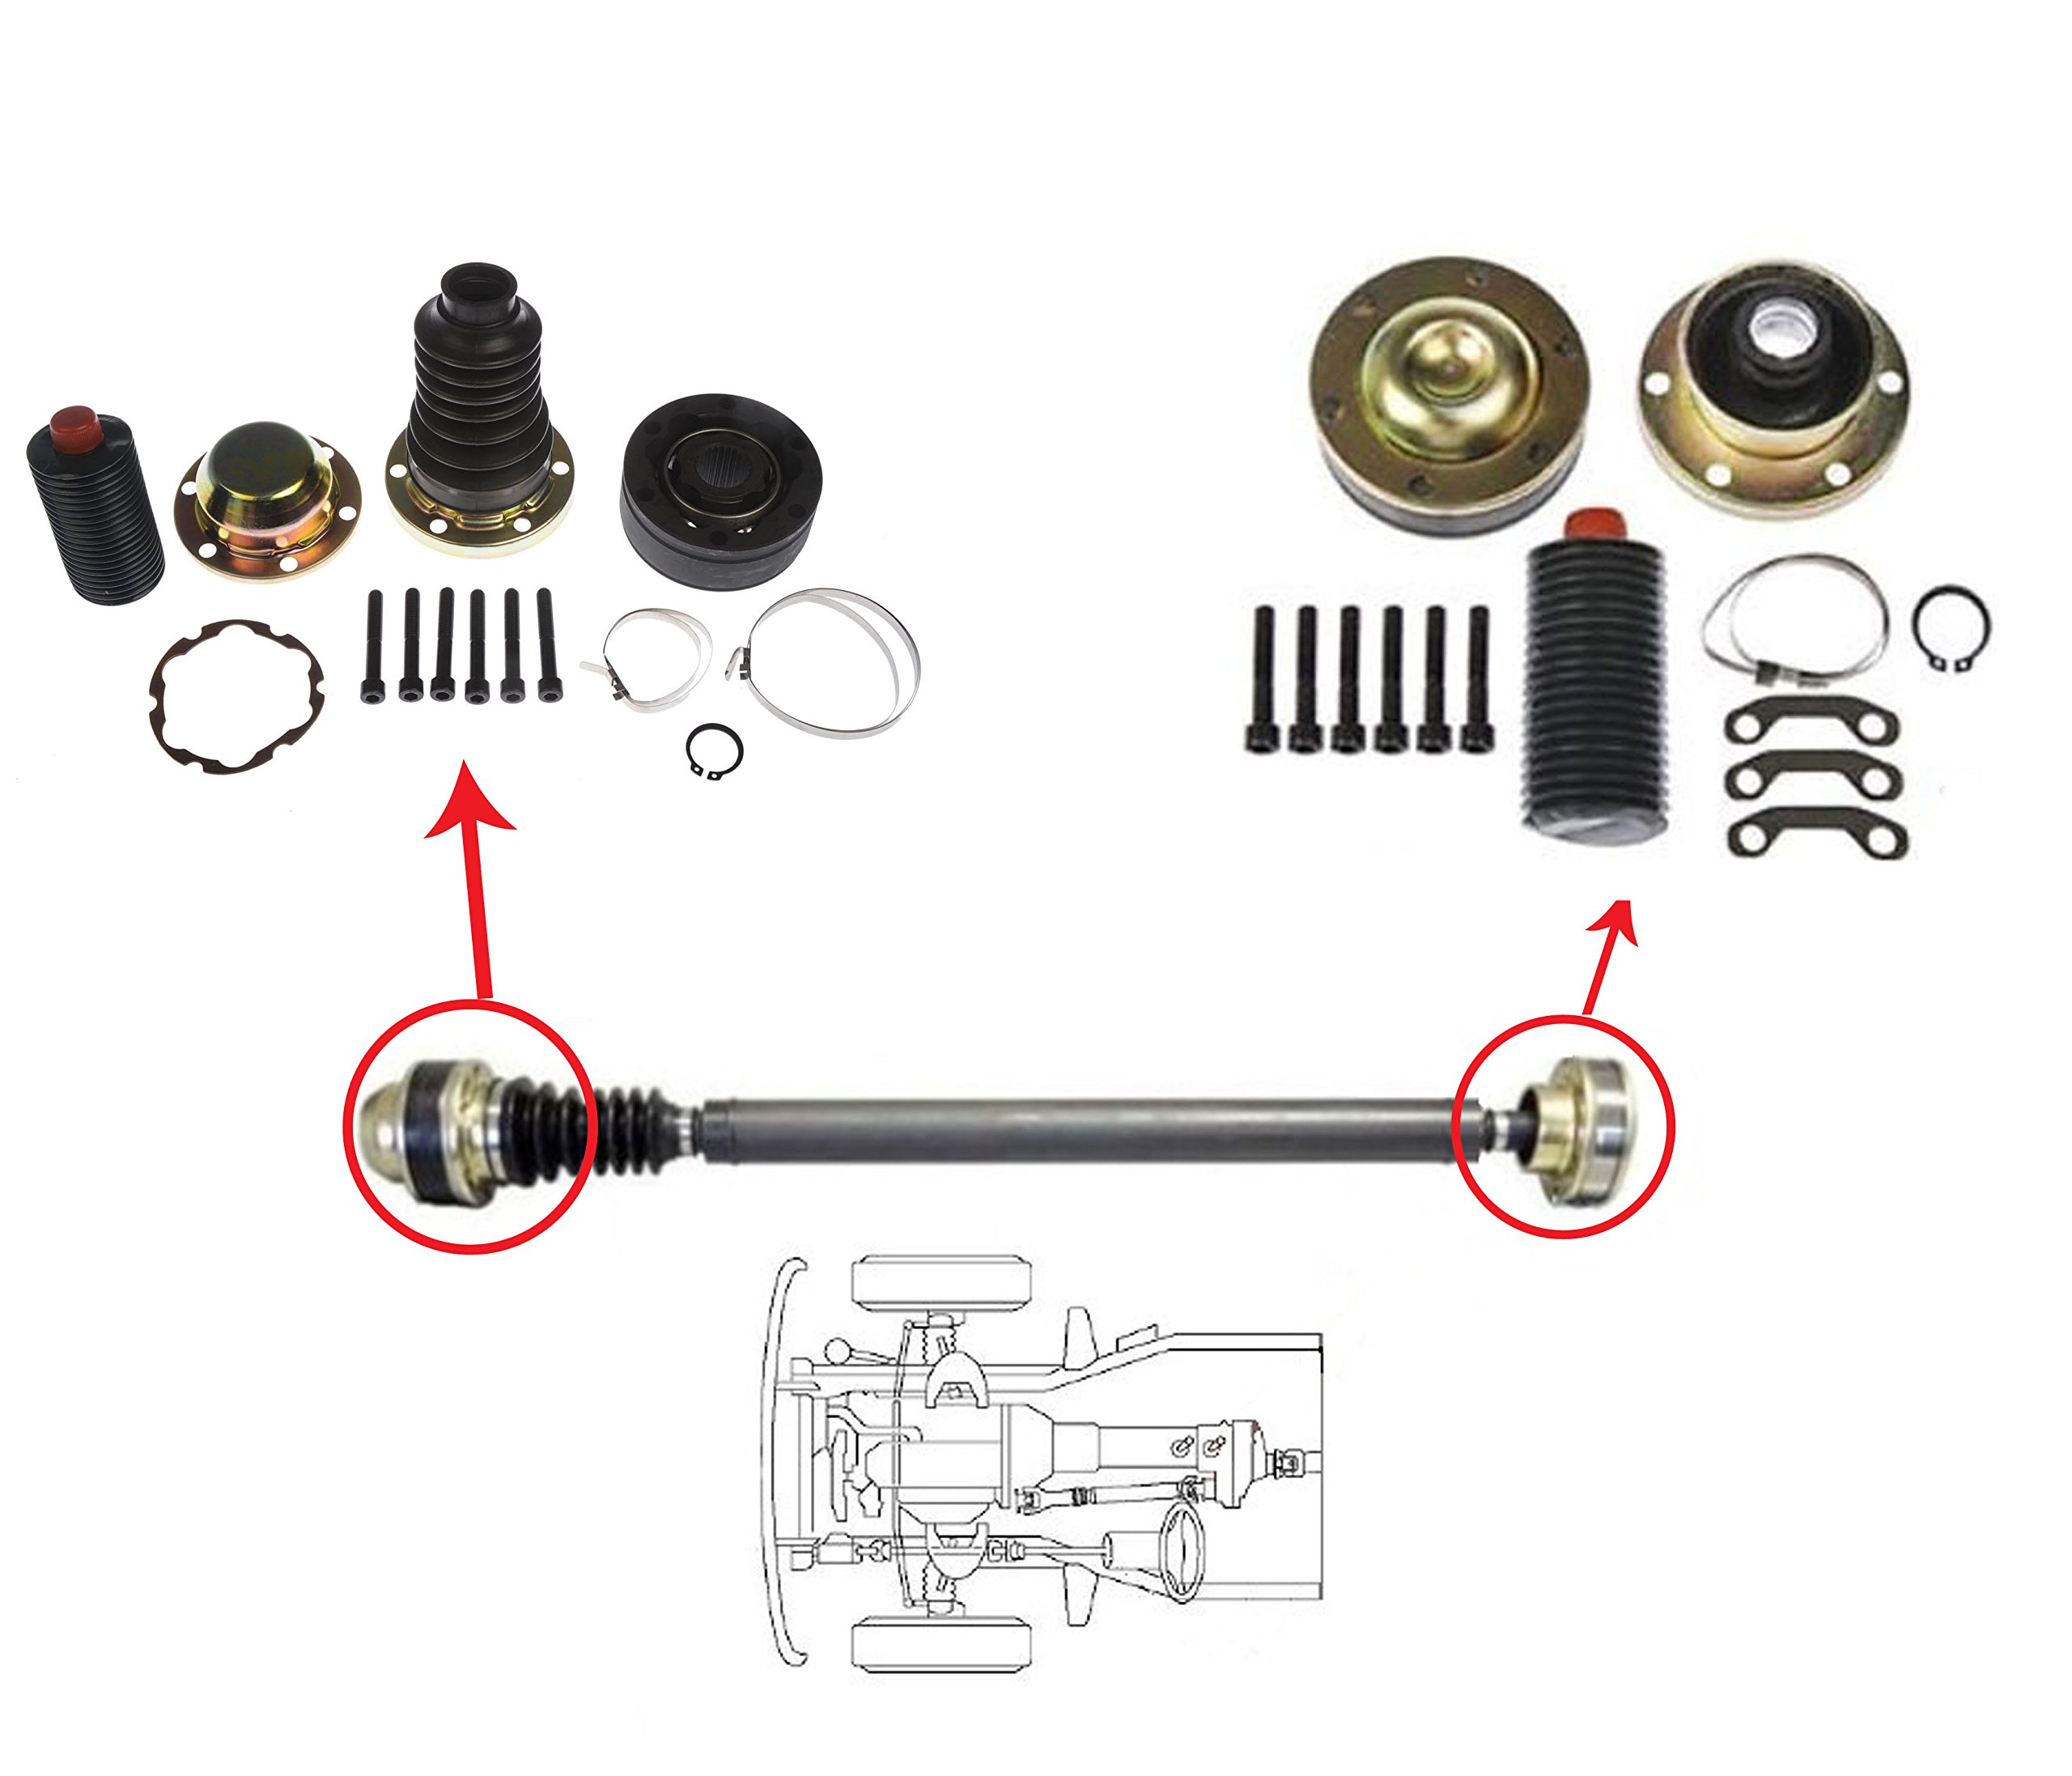 2 Joints - DTA D1932301302K Driveshaft Propshaft Joint Repair Kits, Jeep Liberty, Grand Cherokee, Both Ends, OE replacement, Replace Dorman 932-301 932-302